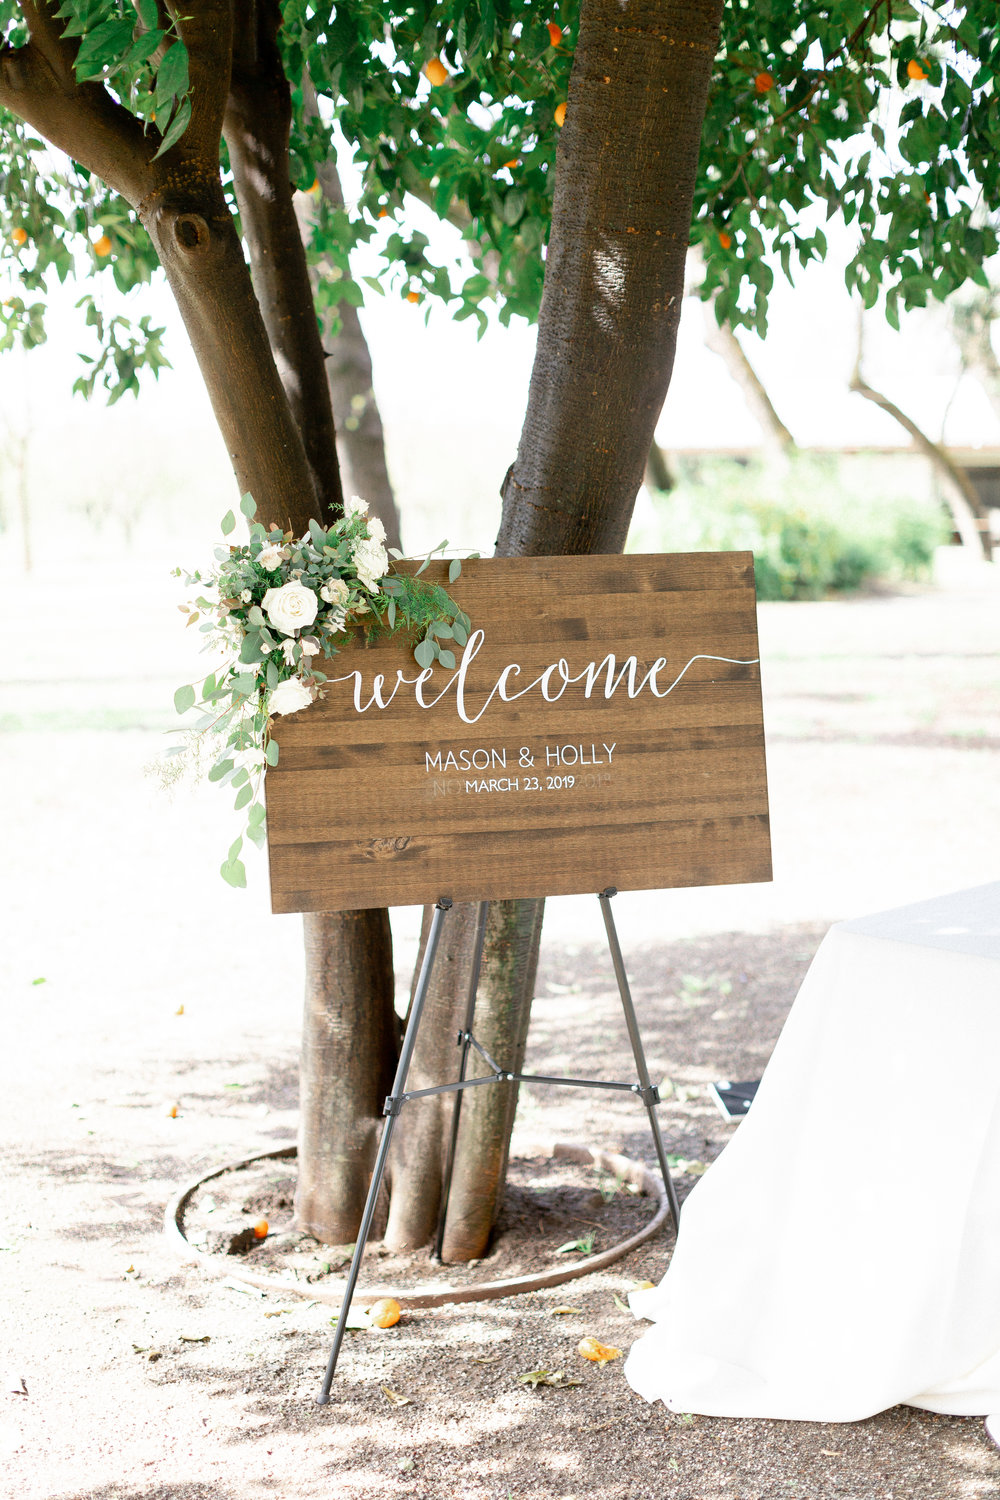 welcome-sign-in-chico-ca.jpg